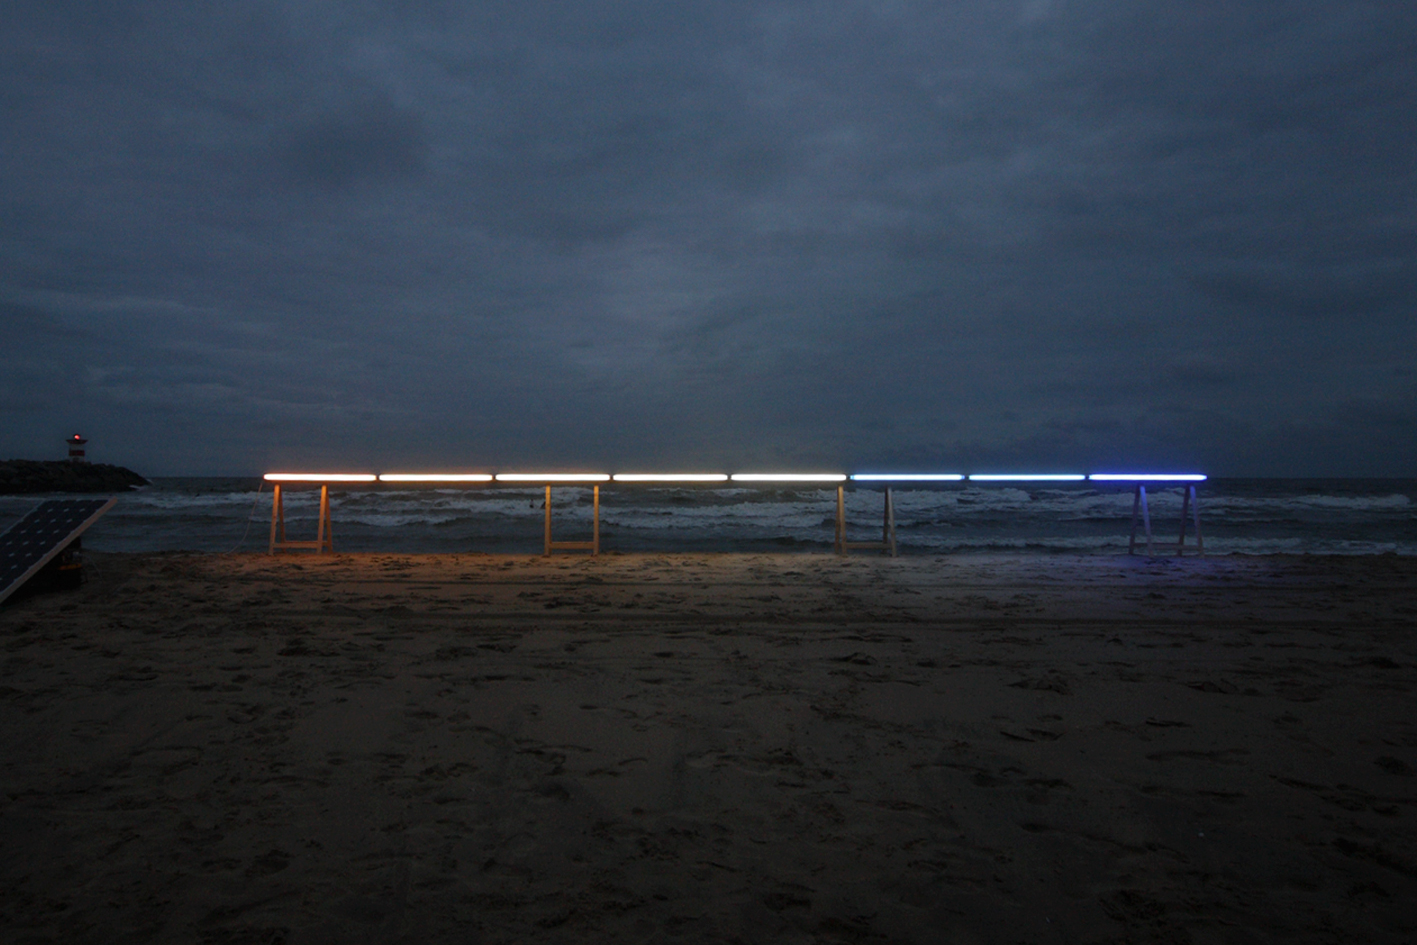 James Geurts,  Drawing Horizon , 2010, Site and time-specific solar light installation, Fluorescent tubes at various temperatures and pulses, Dusk event North Sea, Satellietgroep, Den Haag Netherlands